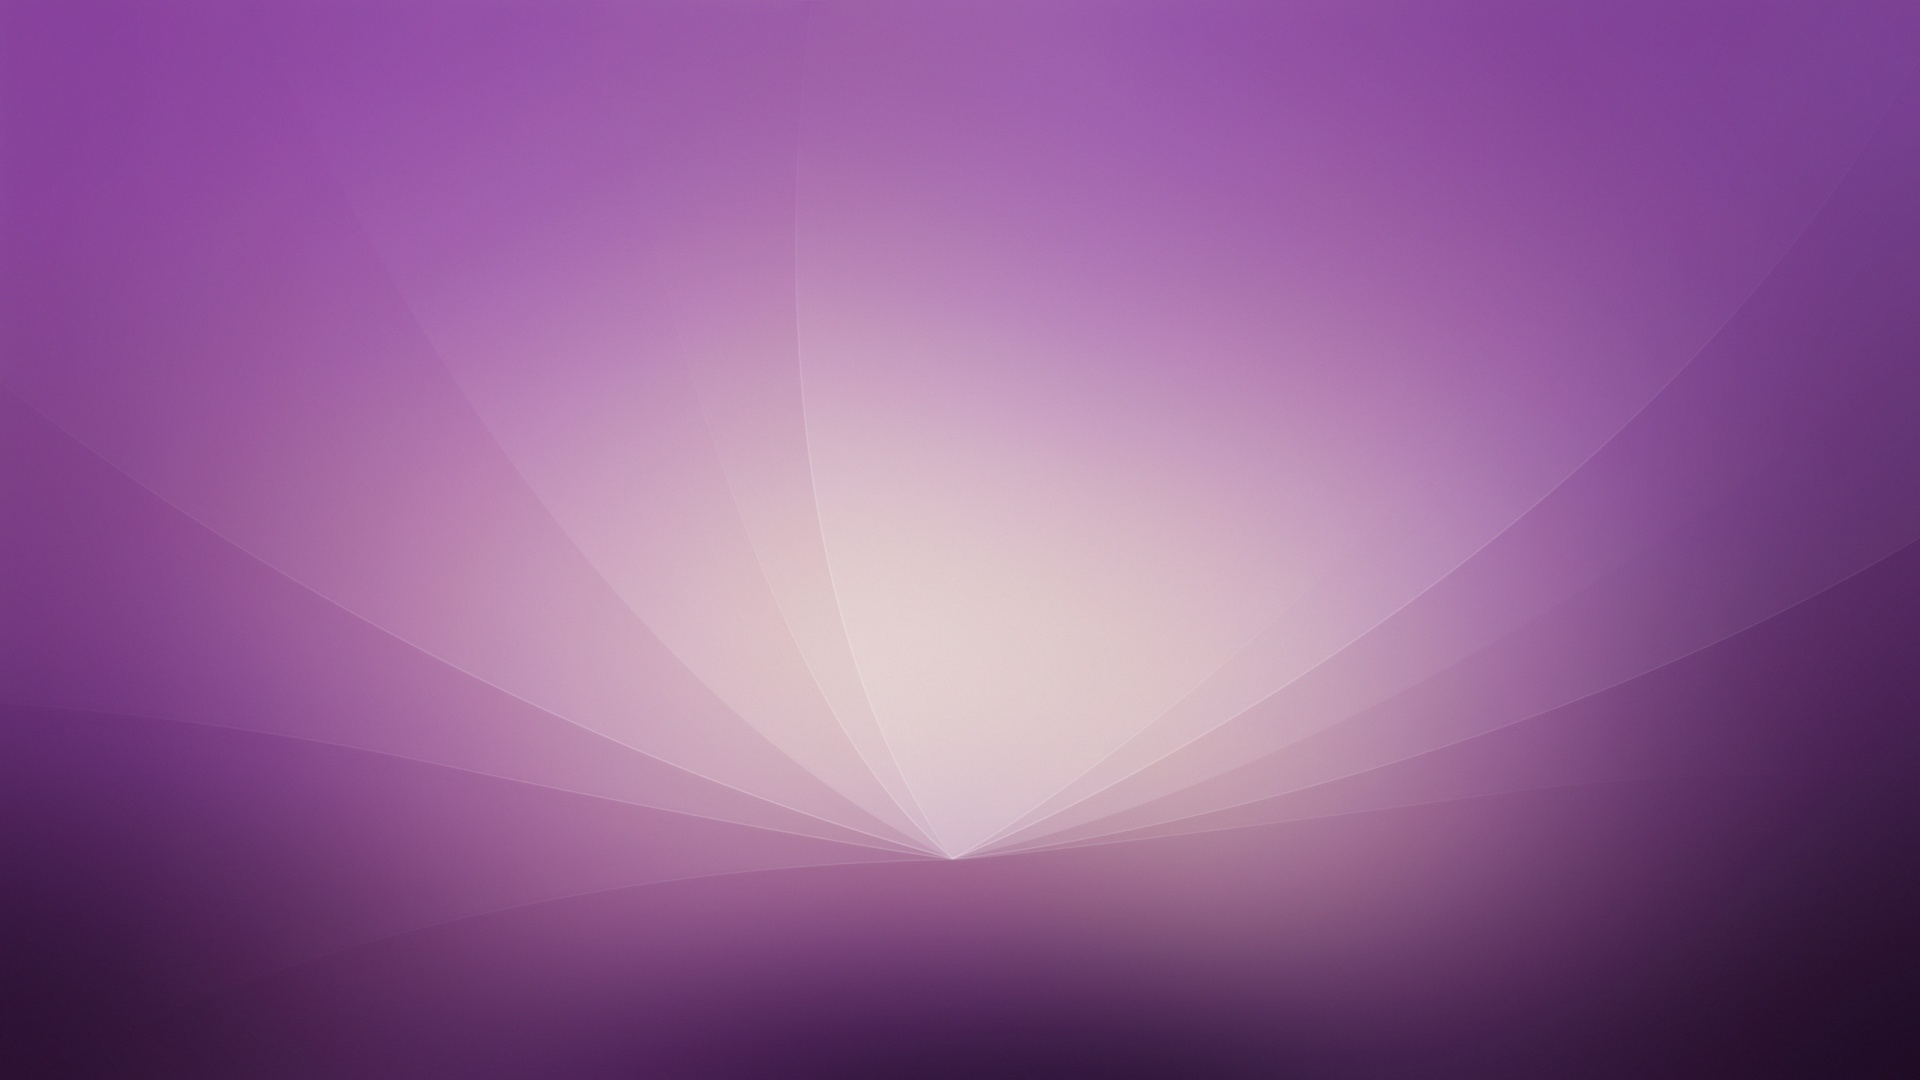 purple wallpapers abstract simple clean wallpaper 1920x1080 1920x1080